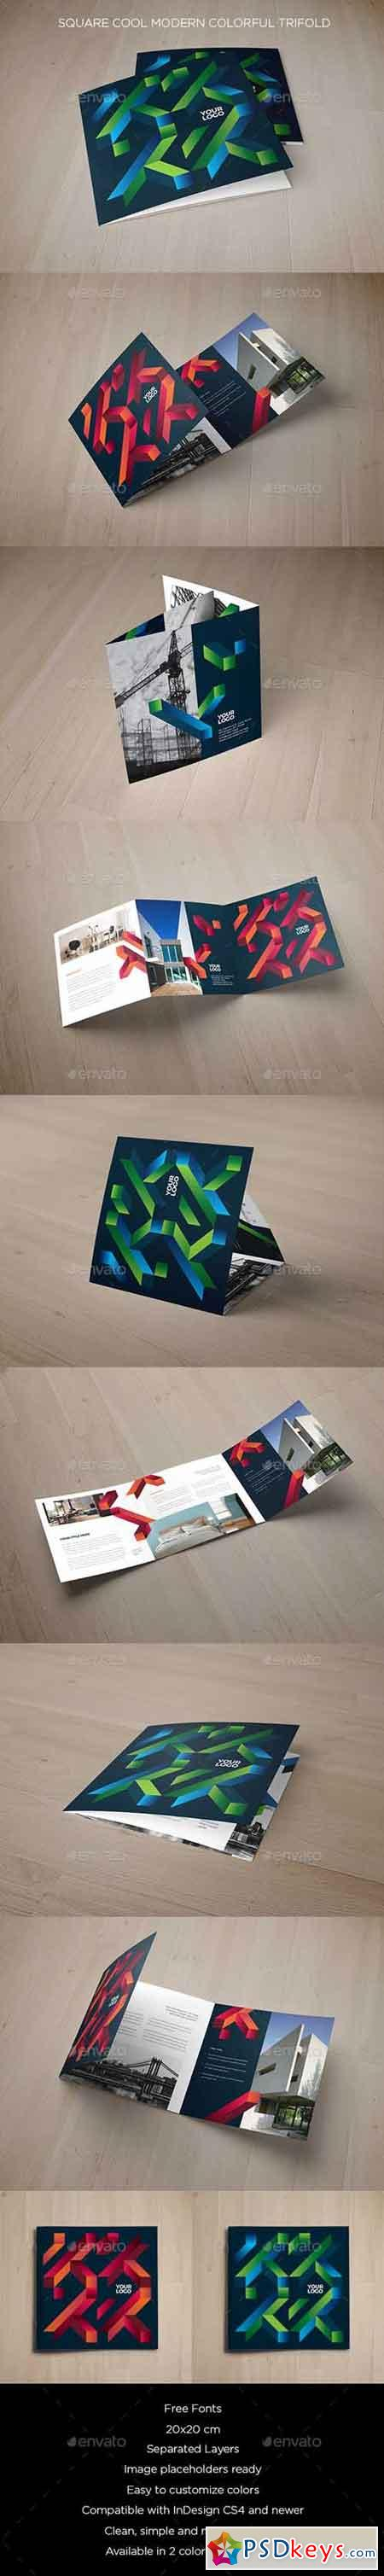 Square Cool Modern Colorful Trifold 19488954